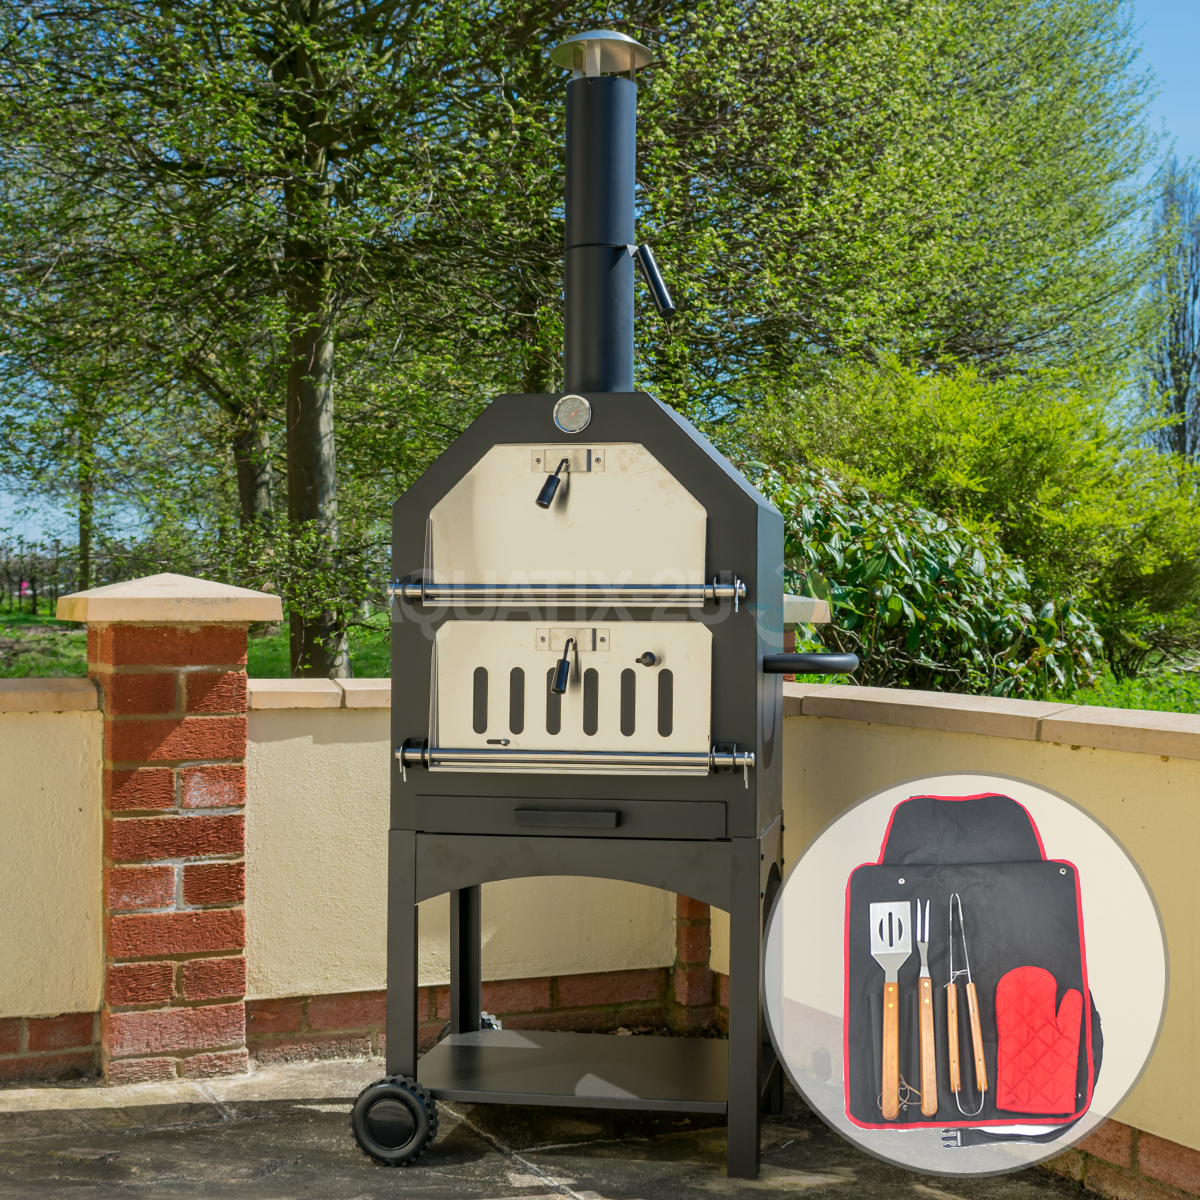 Outdoor Charcoal Pizza Oven Amp Toolset Steel Barbecue Smoker Wood Fired Bbq Grill 5060502535924